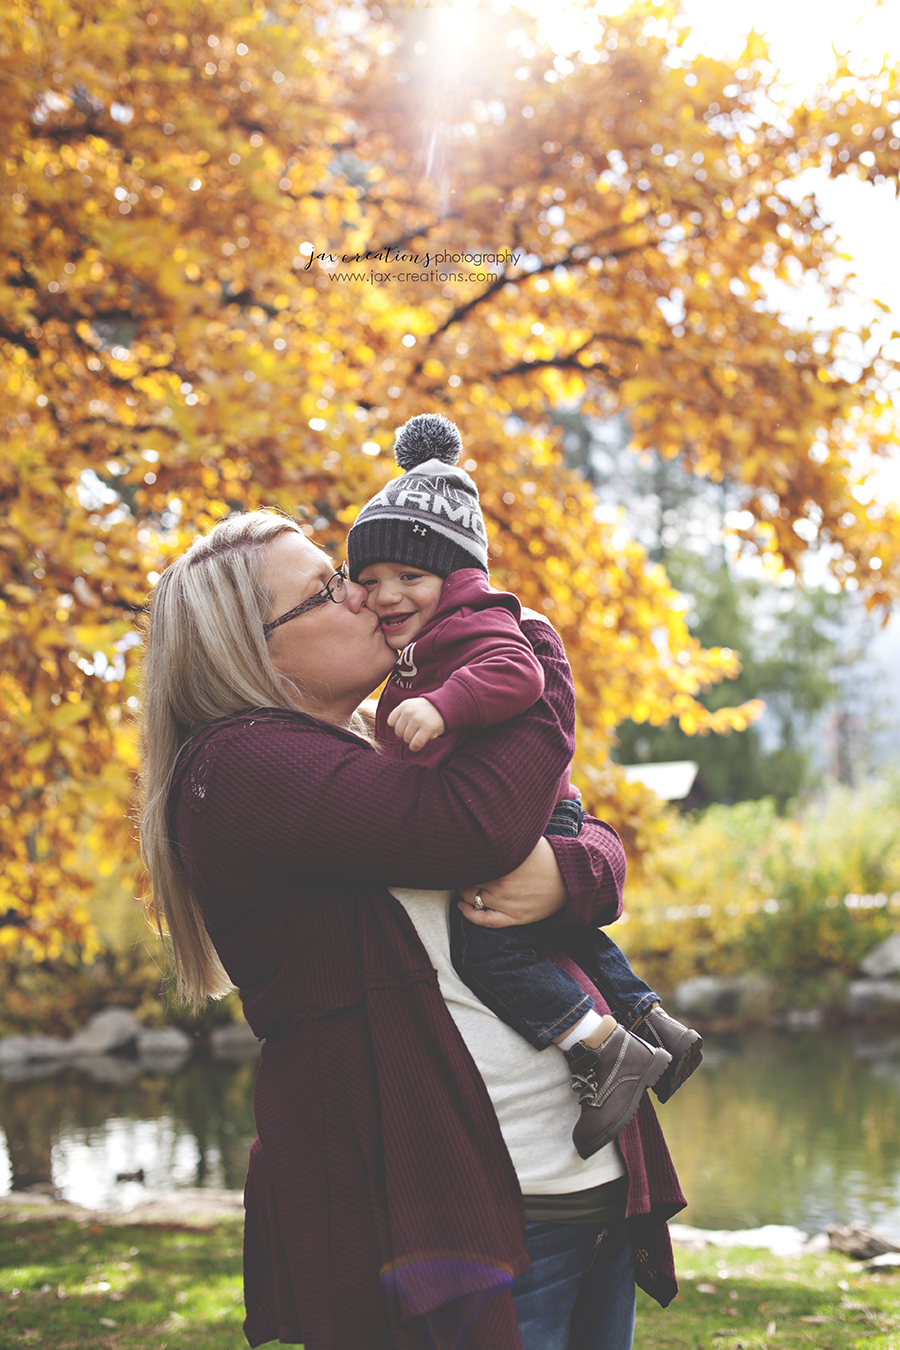 jax creations photography, family, family photography, coeur d alene idaho, cda photographer, post falls, pure moments films